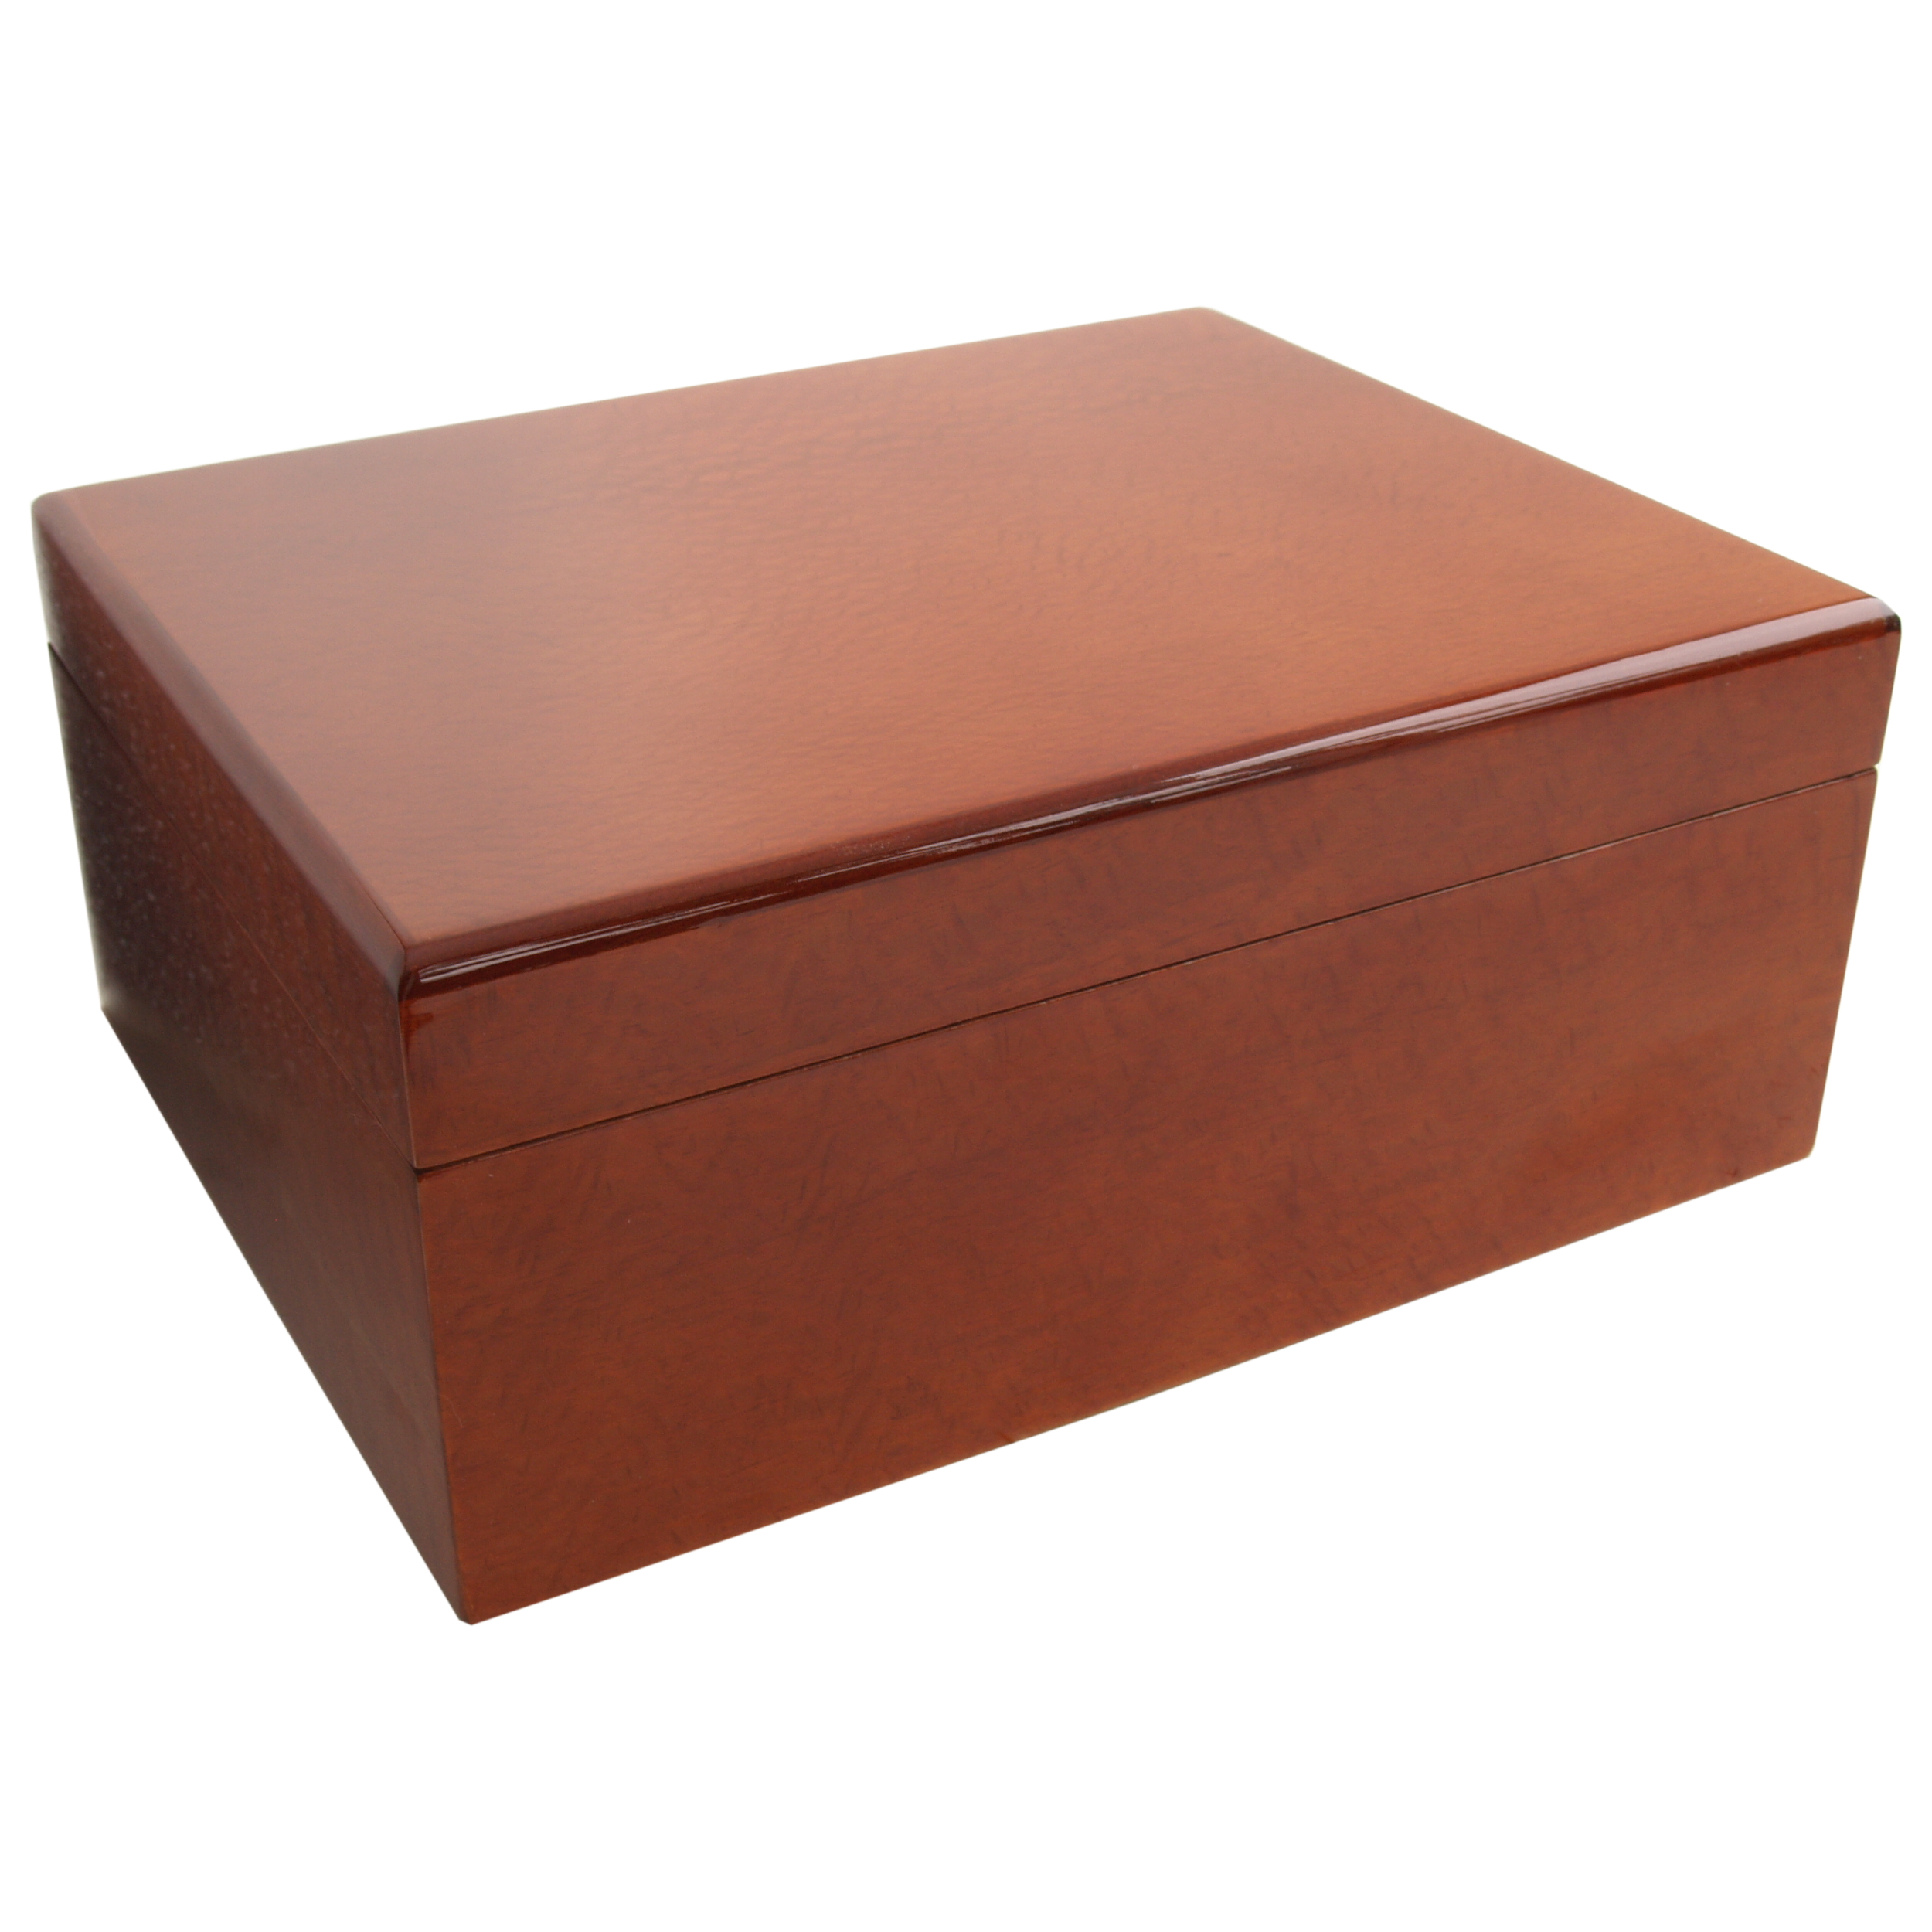 Savoy by Ashton Medium Humidor in Beetlewood, 50 Cigar Capacity